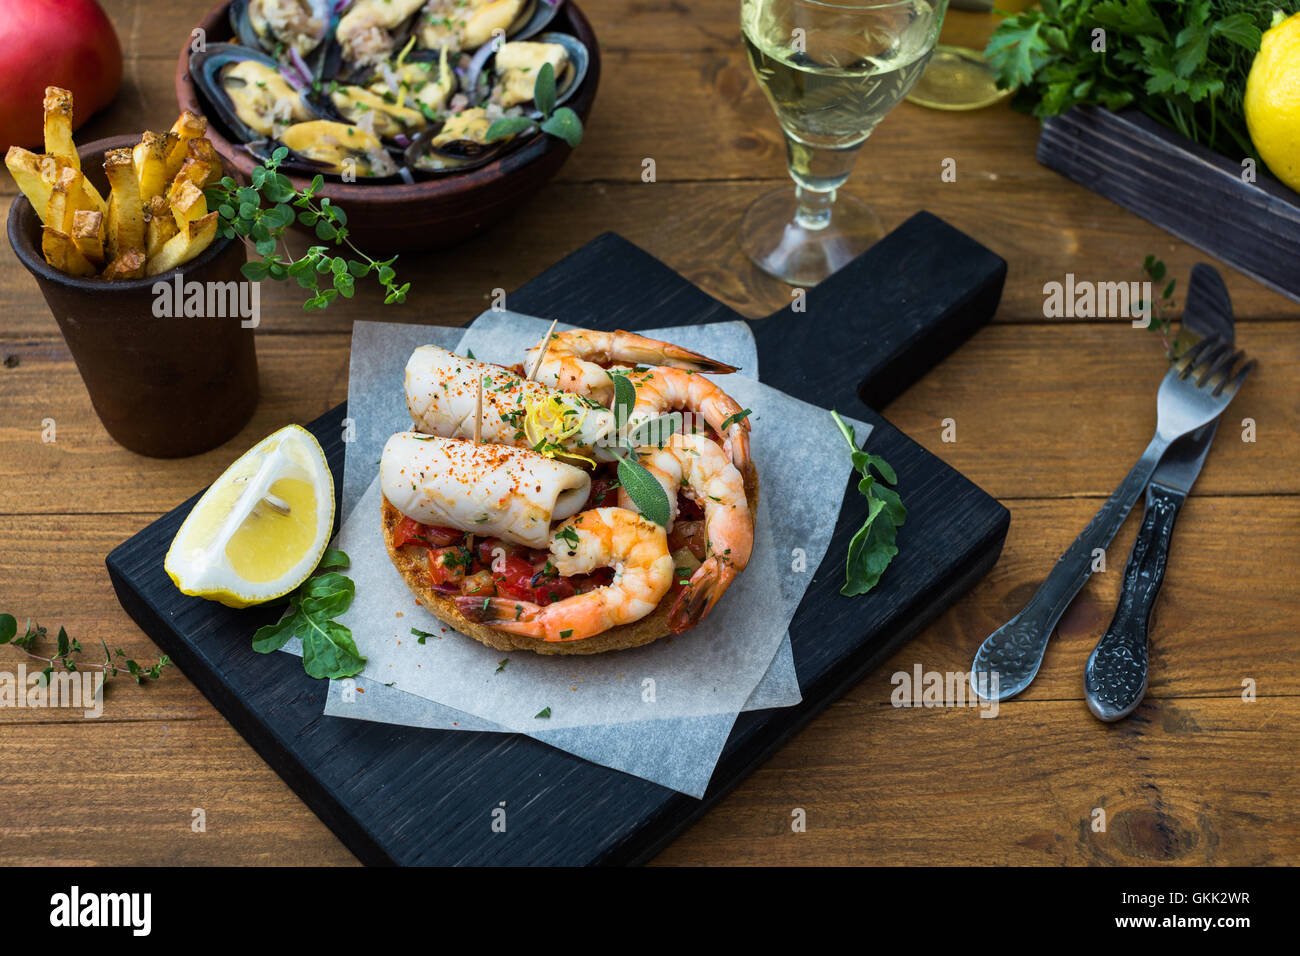 Italian food. Bruschetta with squid and prawns, tomatoes and parsley - Stock Image